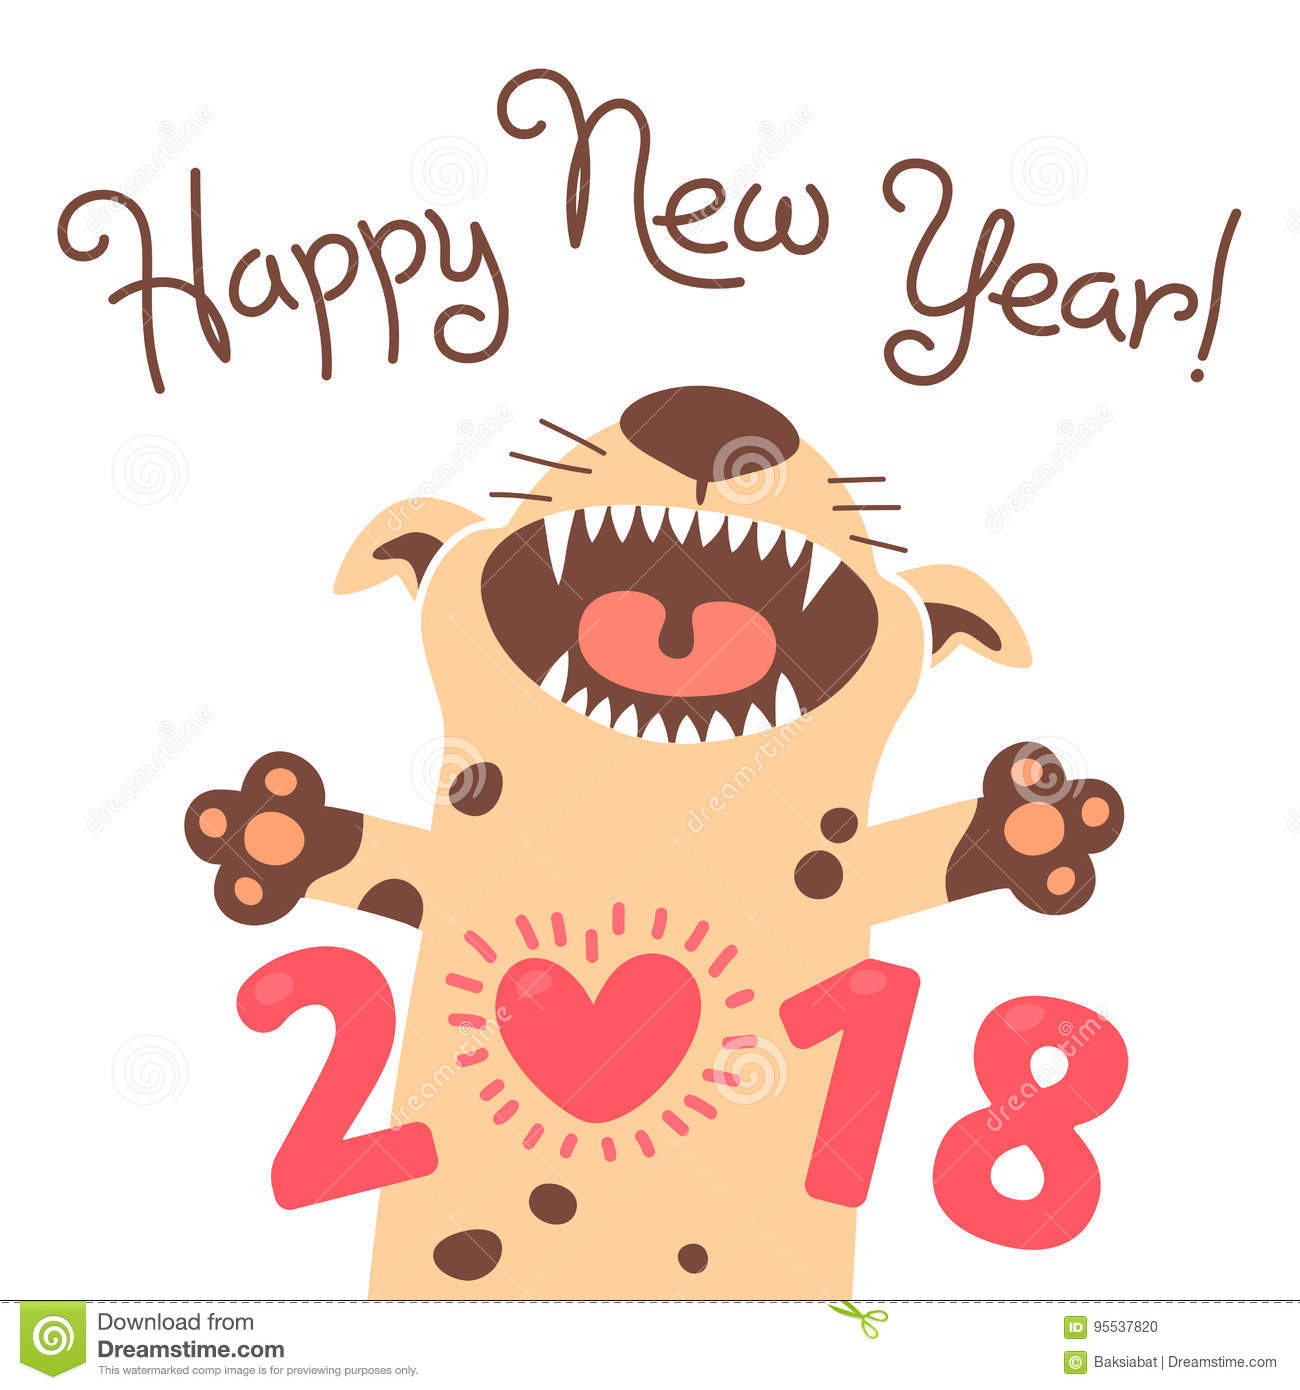 happy 2018 new year card funny puppy congratulates on holiday dog chinese zodiac symbol of the year vector illustration